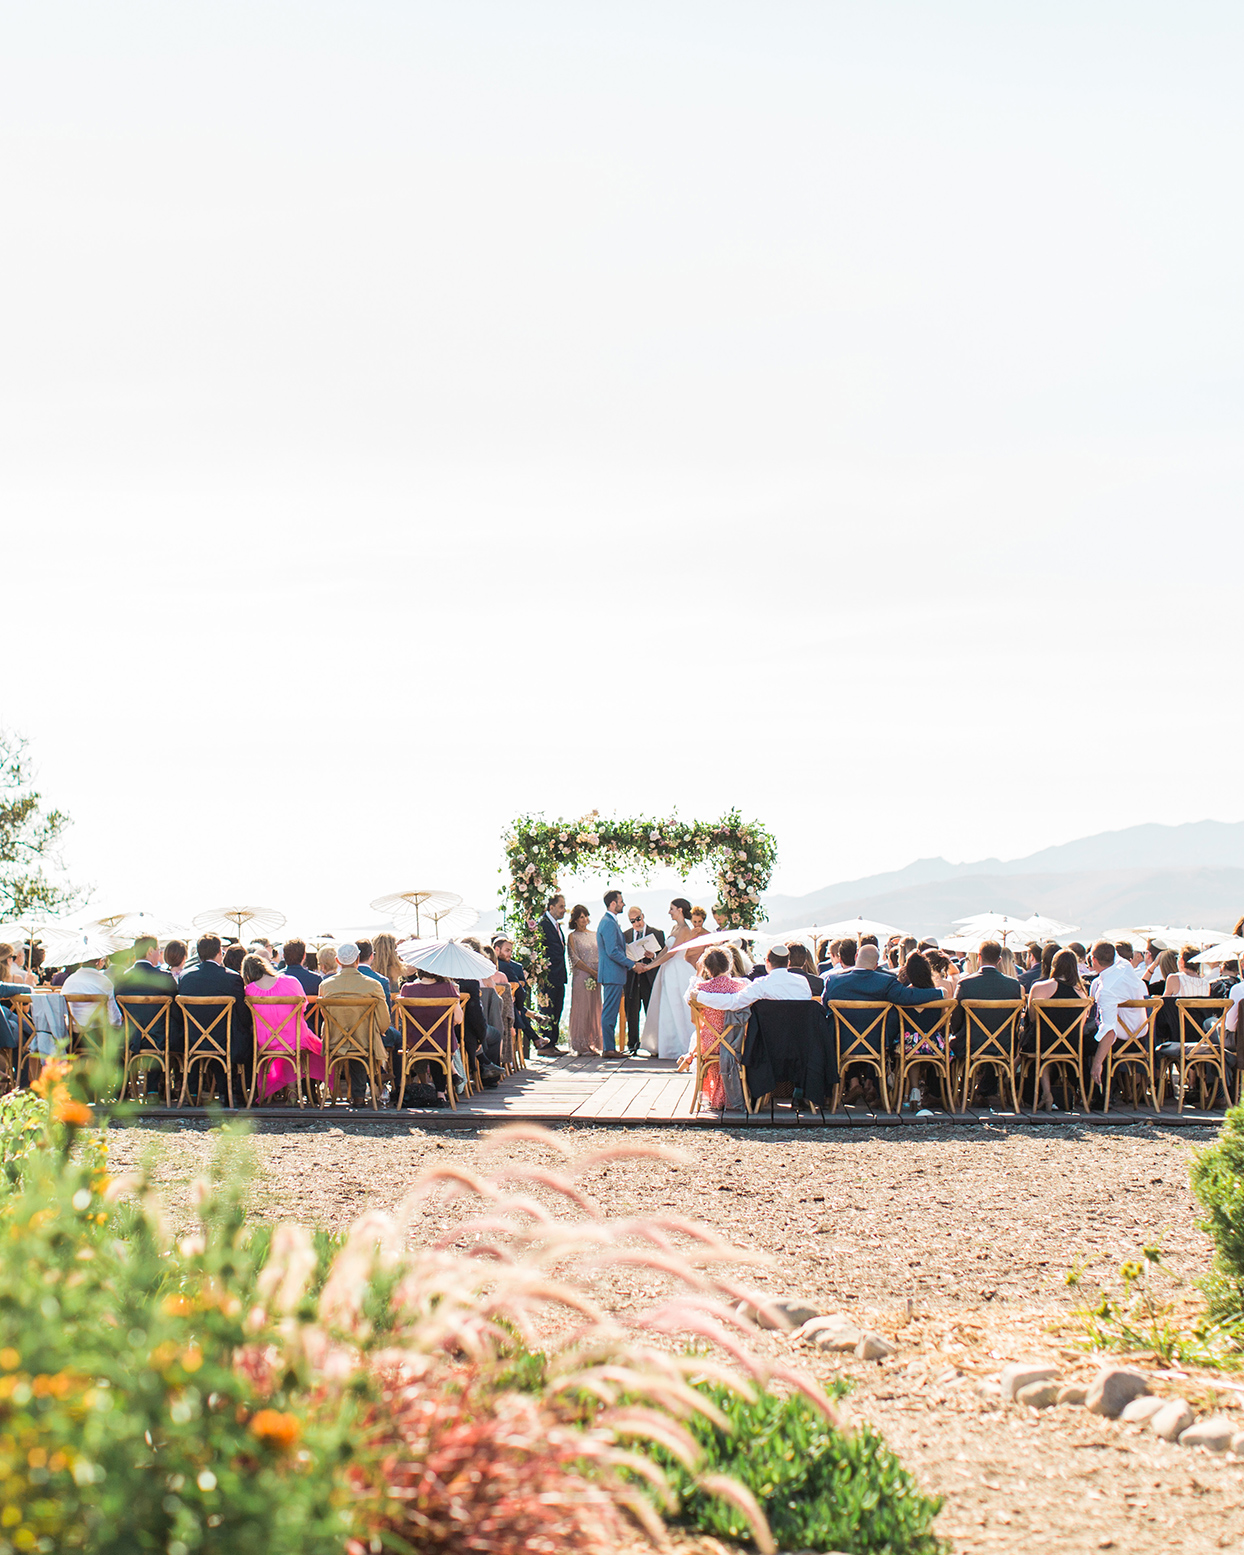 wide open wedding ceremony space with mountain view